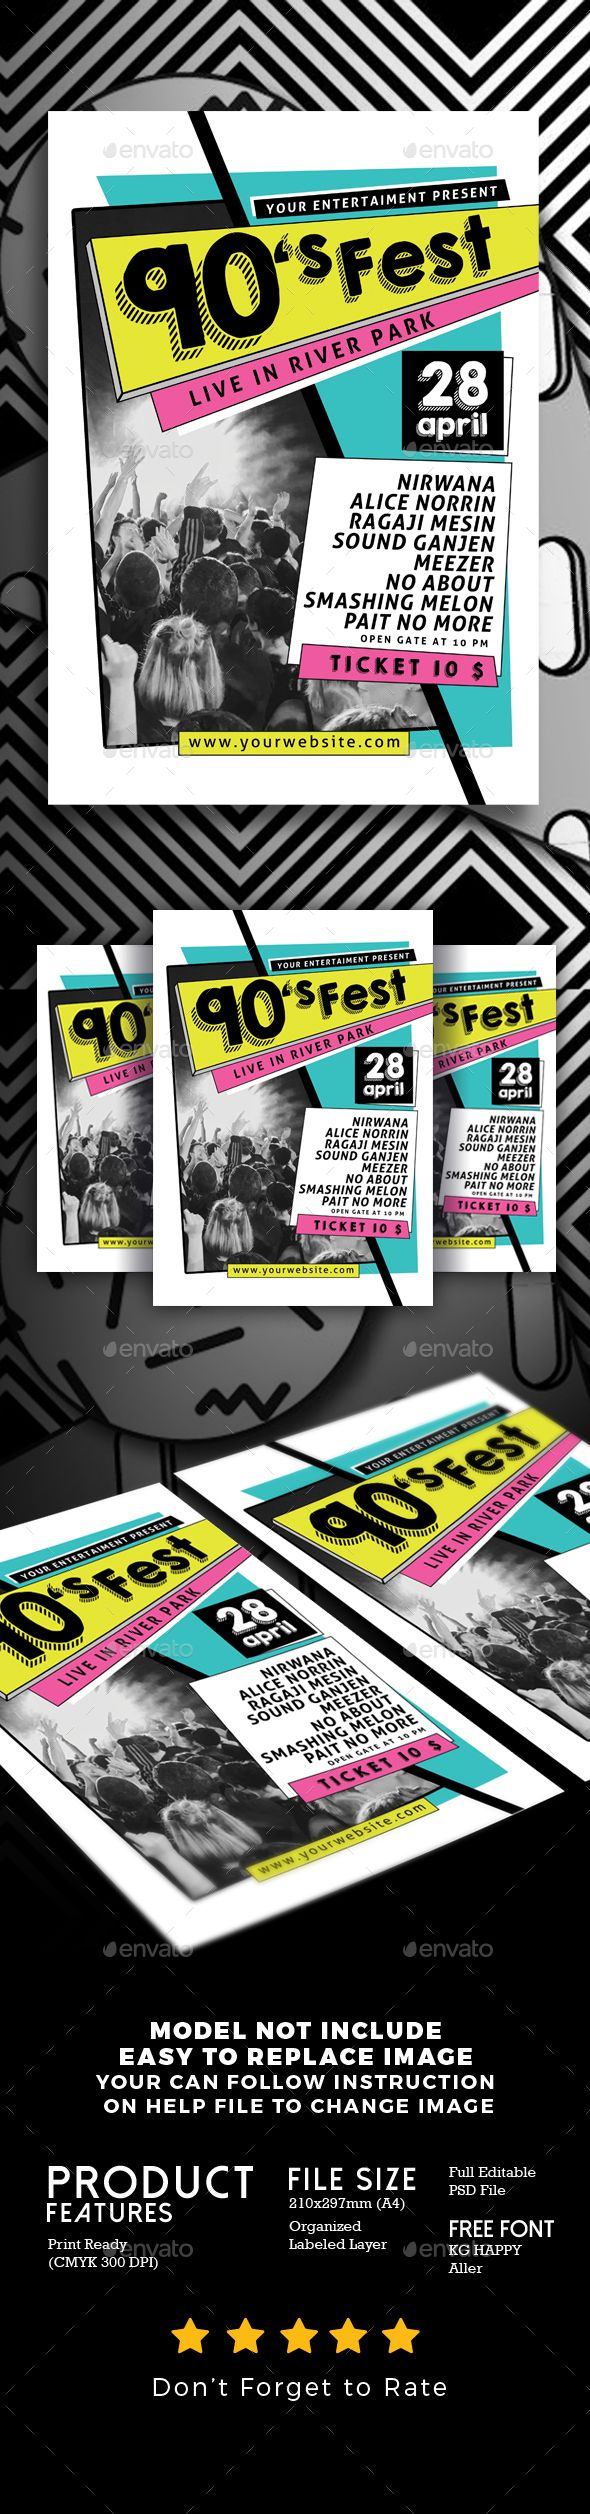 best 25 event flyers ideas on pinterest graphic design flyer